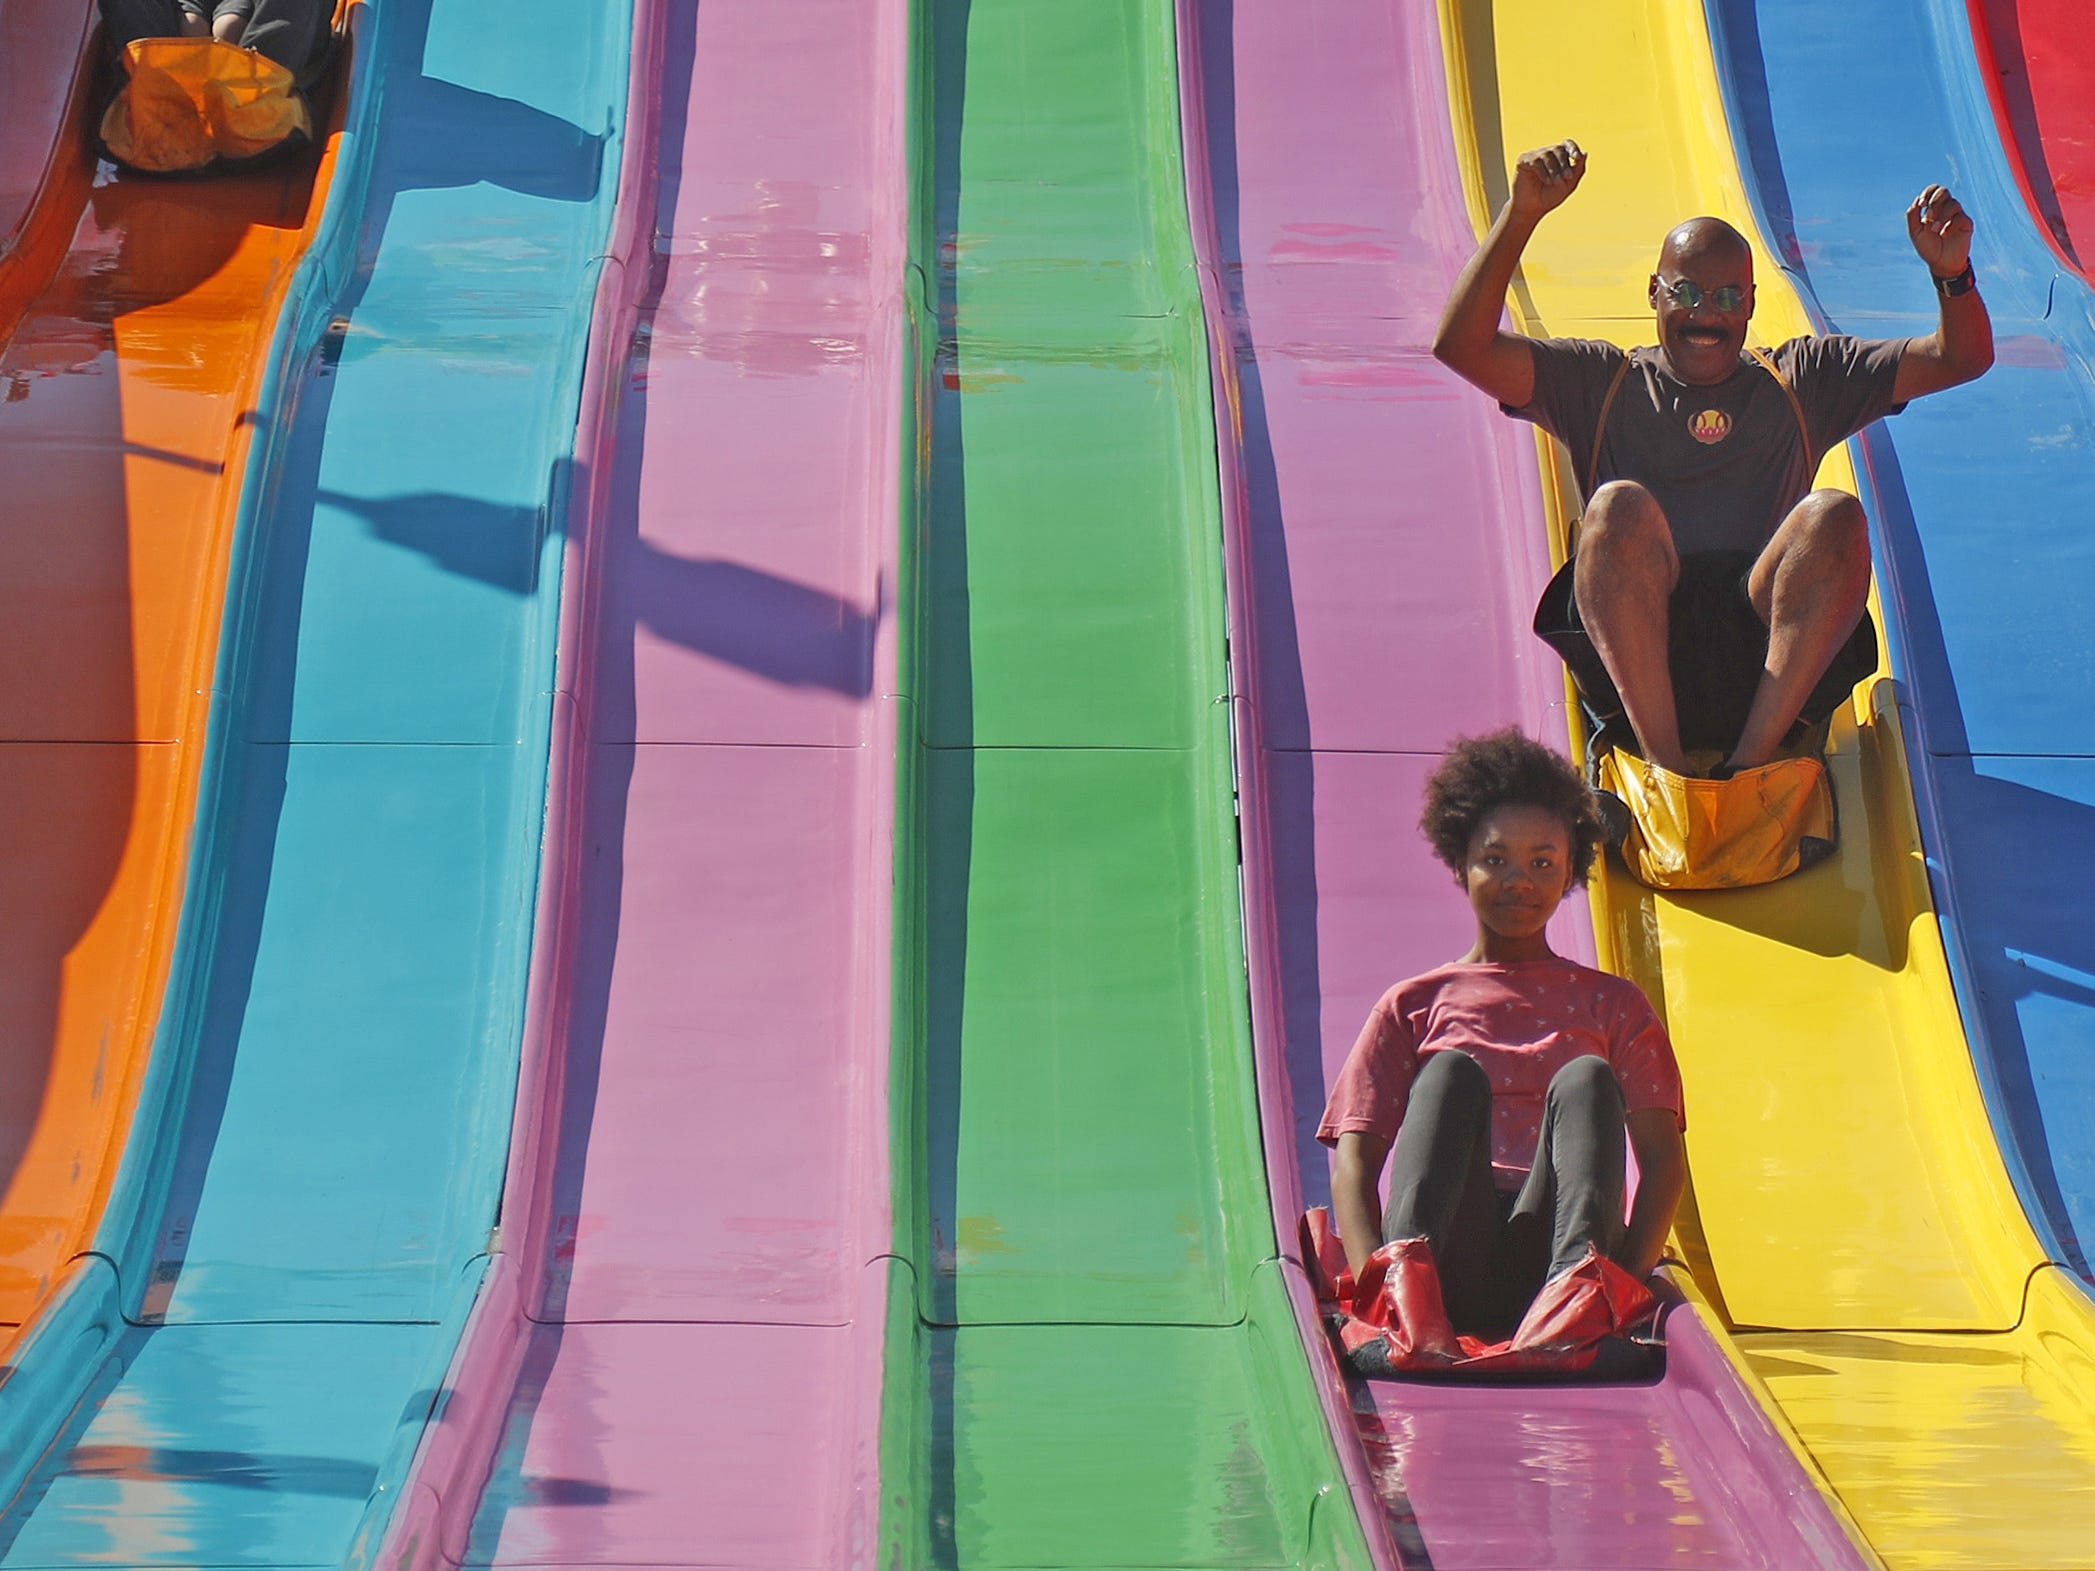 Jojo Frias (L) holds his son Jessiah Frias as Javon Frias (center pair) rides down the Euroslide with Elizabeth Frias and Ava Manager (front) beats her father Vada Manager down the slide at the Arizona State Fair in Tempe, Ariz. on October 5, 2018.